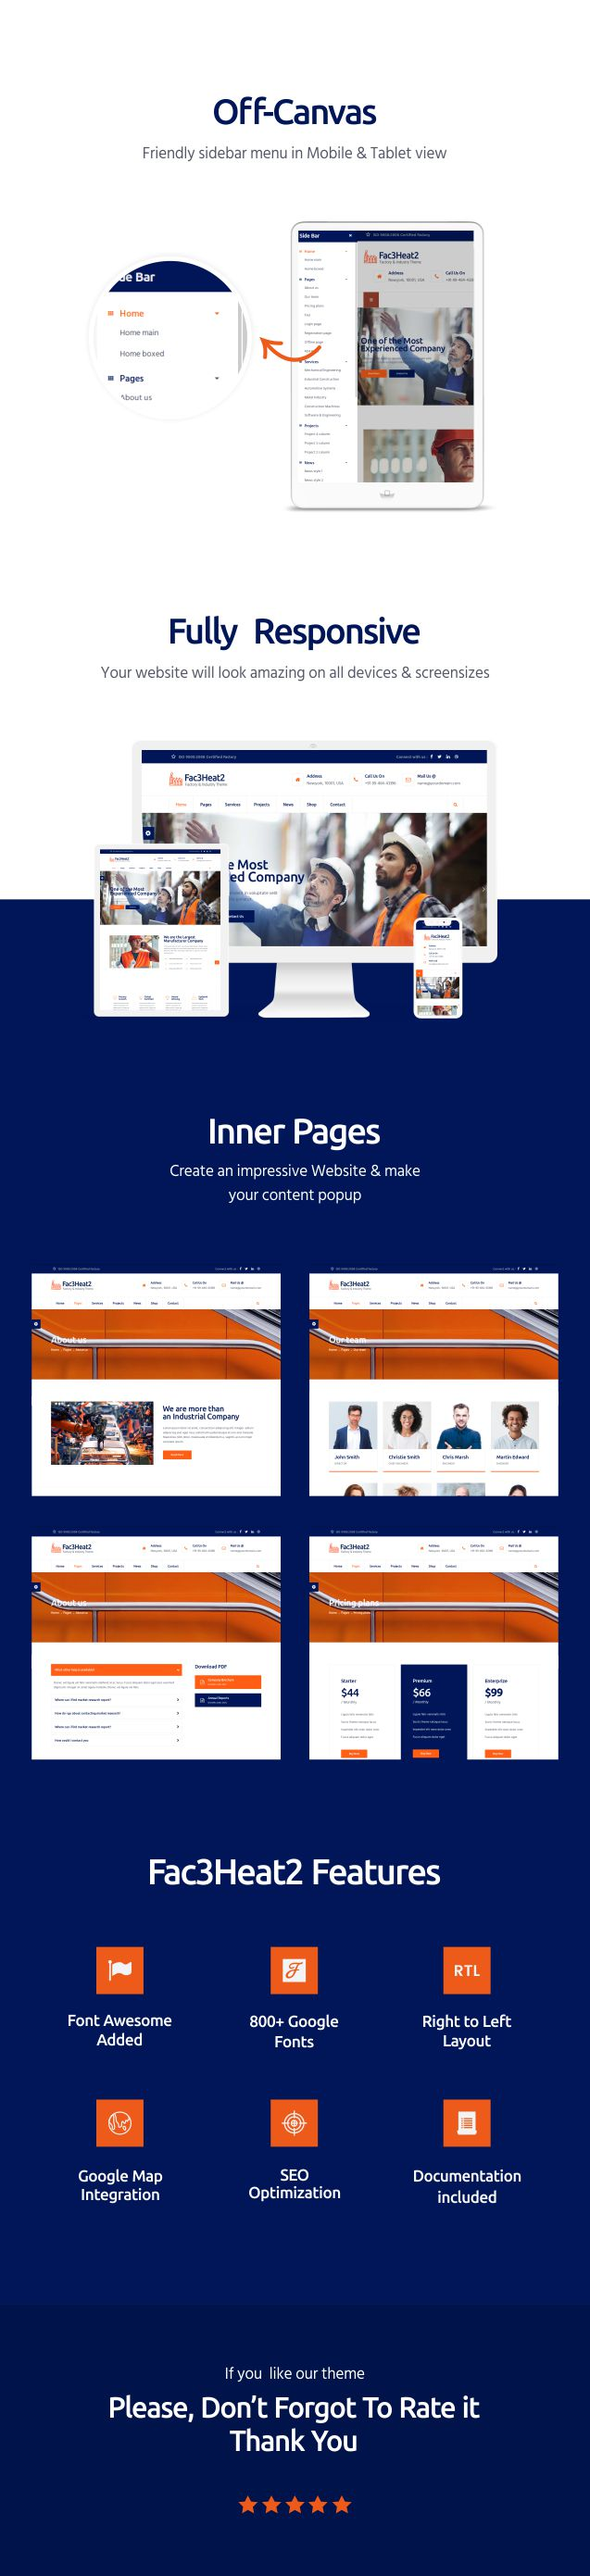 Fac3heat2 – Factory, Industry, Engineering Joomla Template - 2